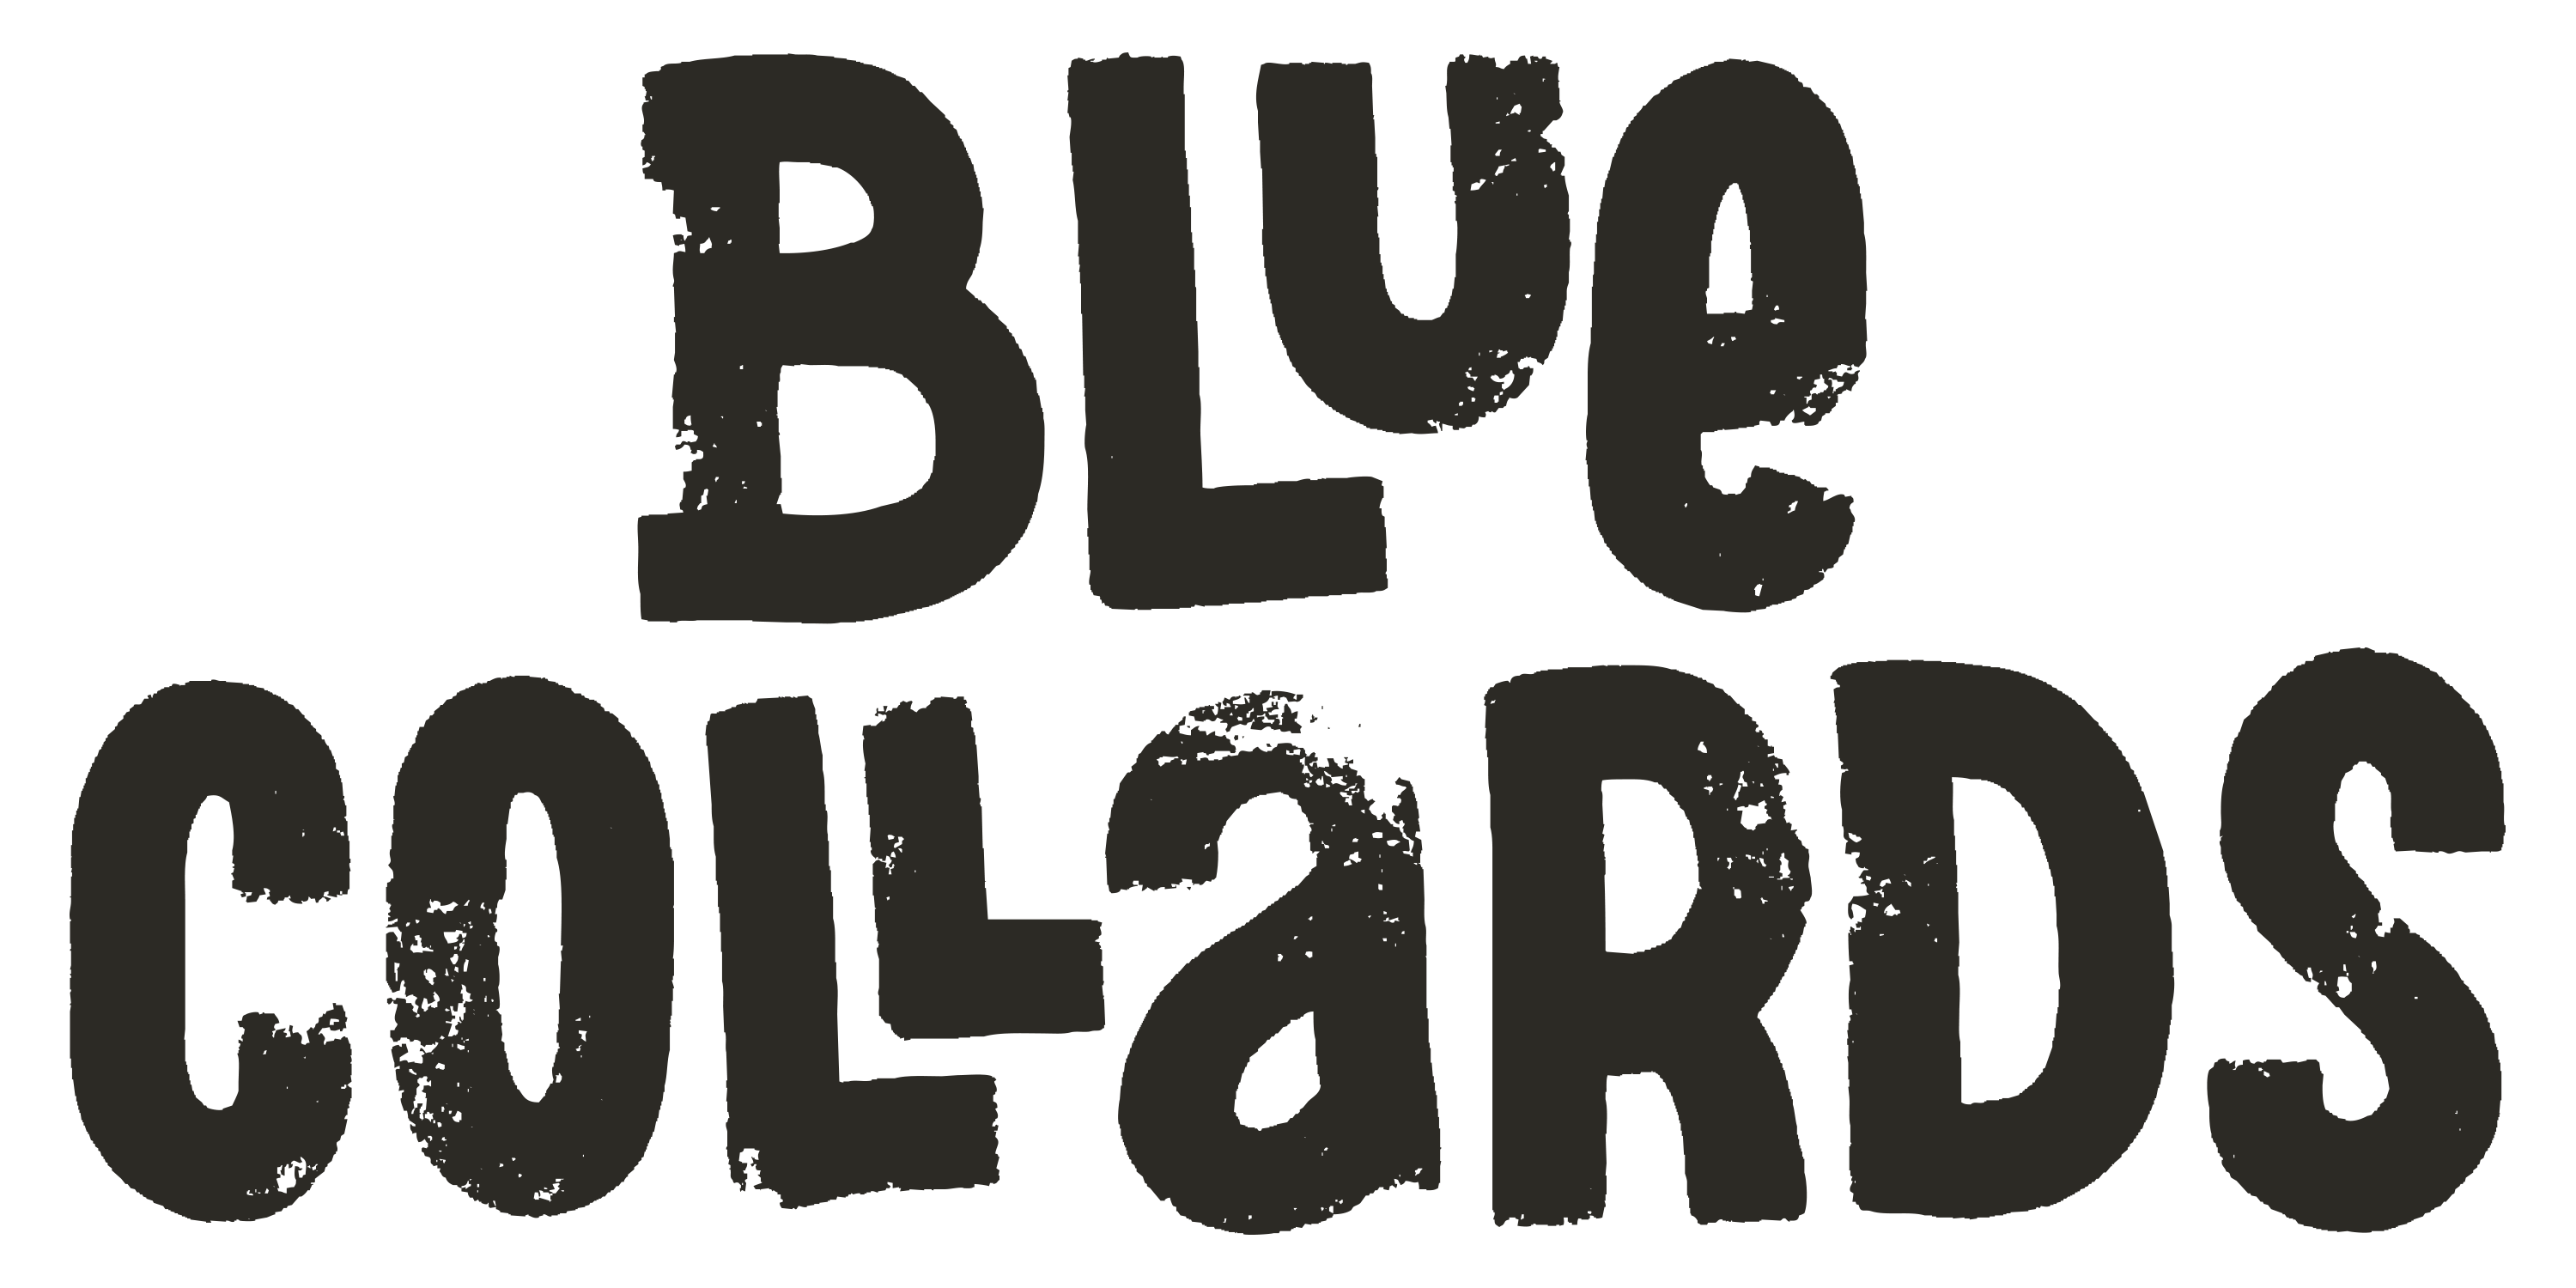 Bluecollardslogo black